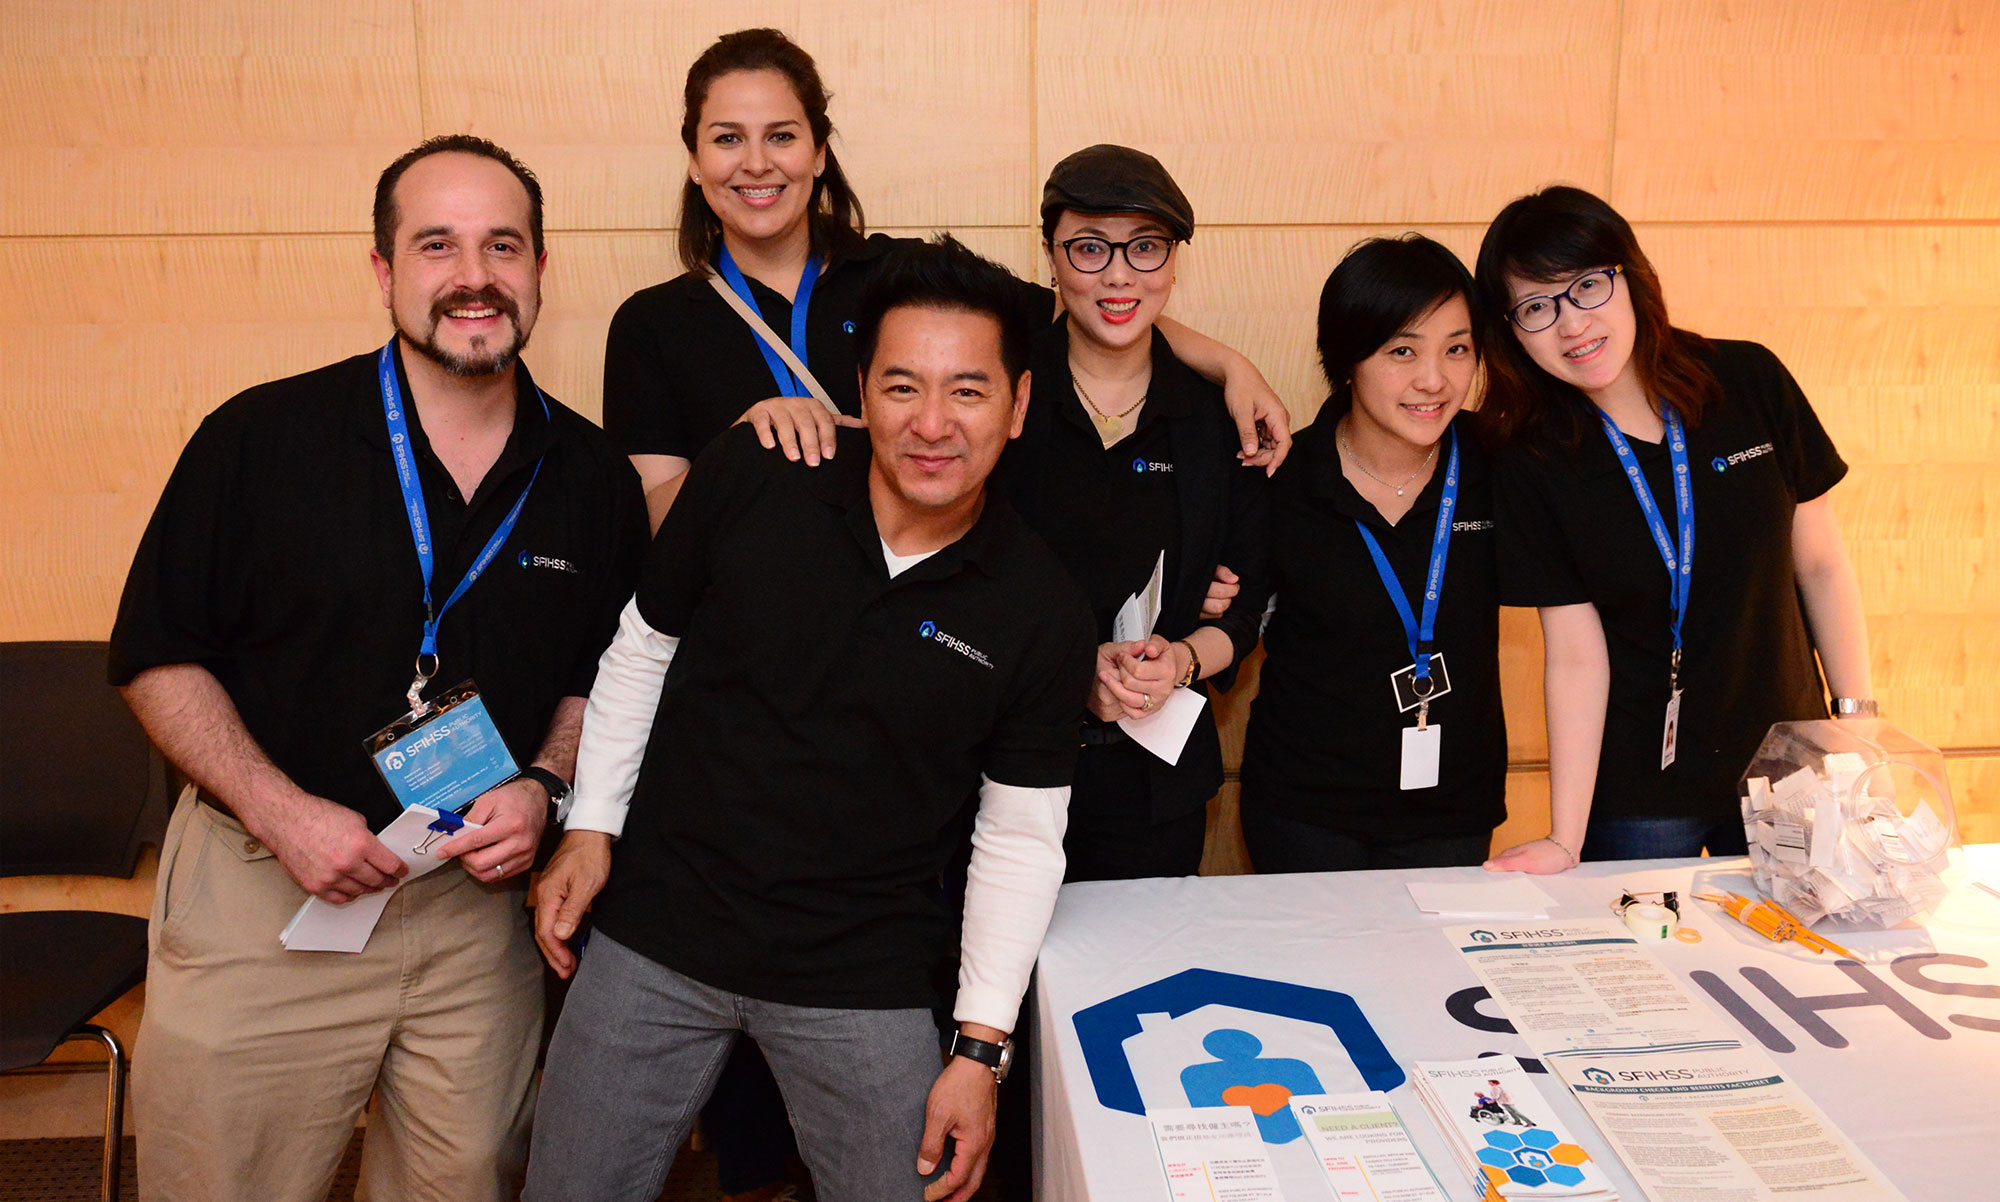 Photo of SFIHSSPA staff members grouped together at a trade show.